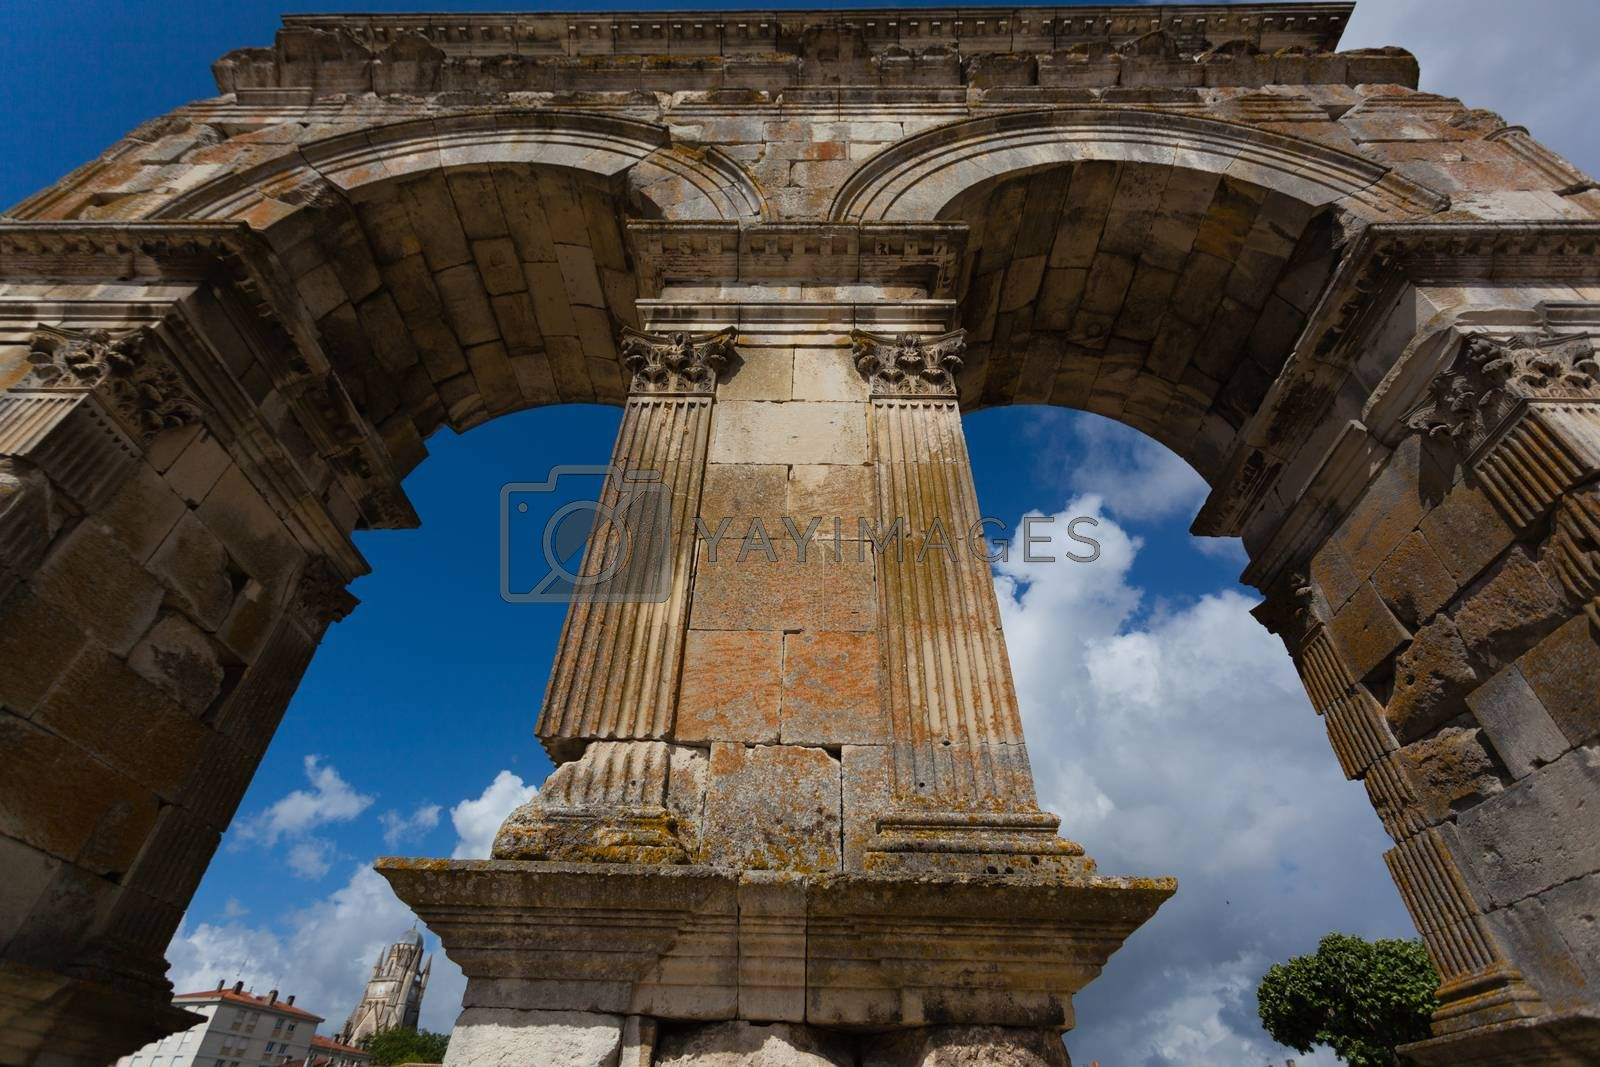 Germanic roman arch of the ville of Saintes in french charente maritime region